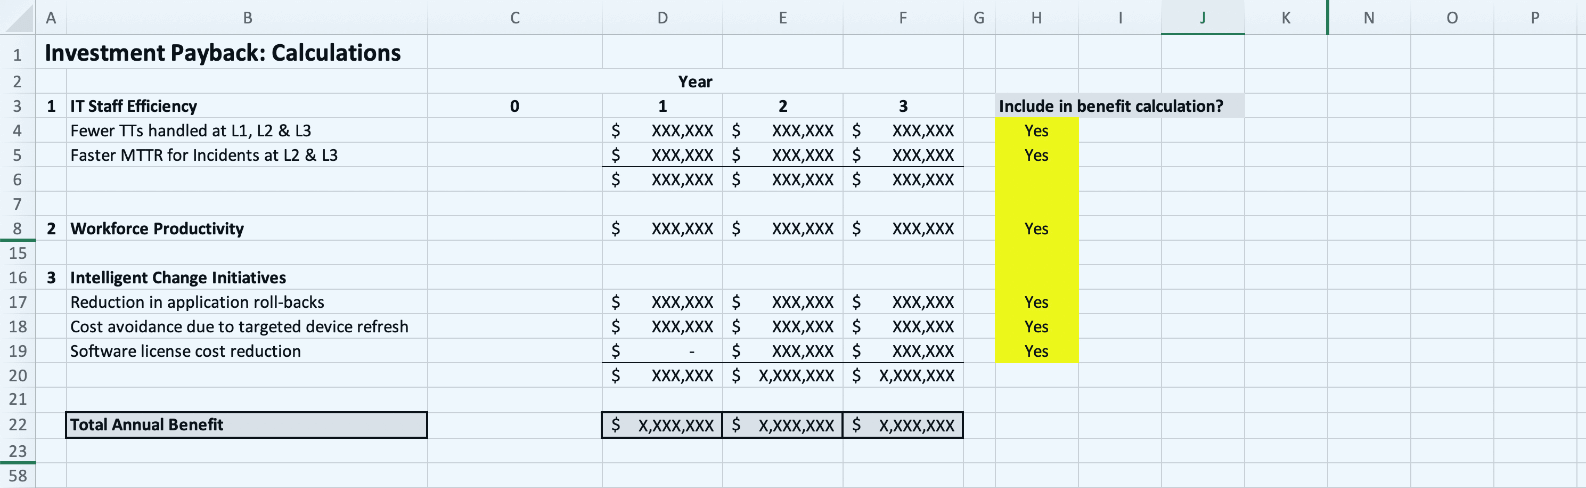 Investment Payback - table